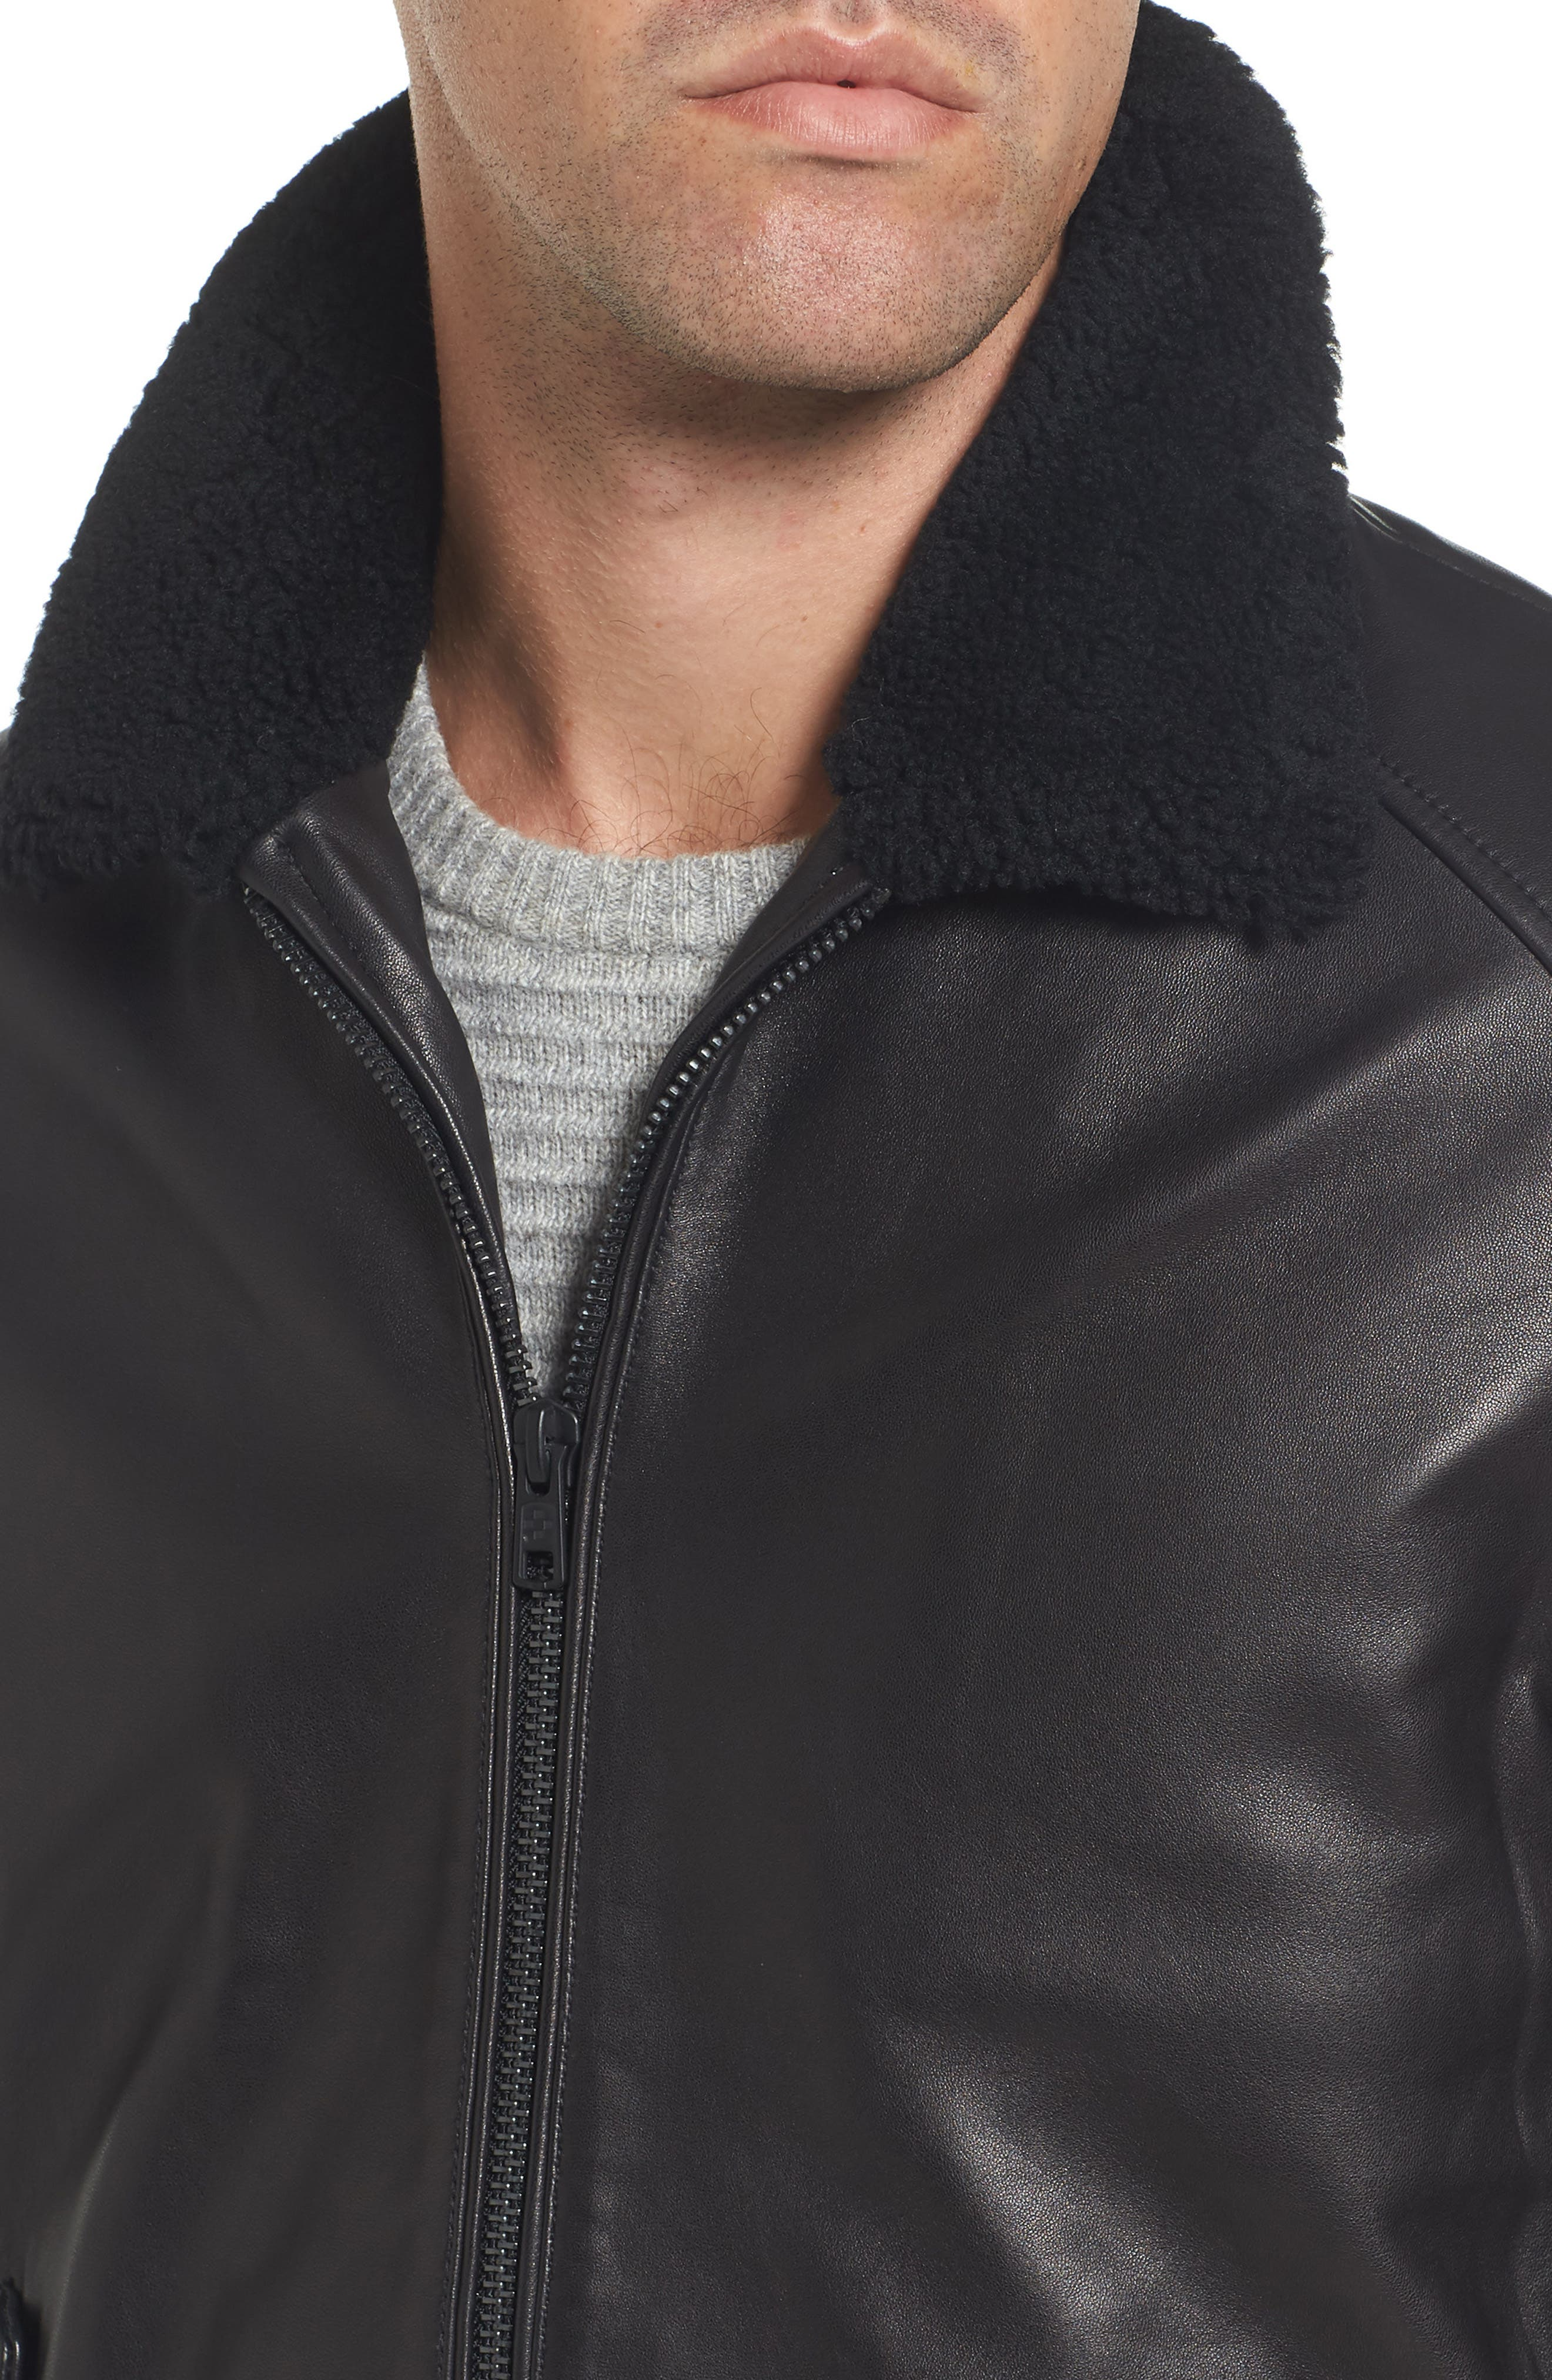 Genuine Shearling Leather Jacket,                             Alternate thumbnail 4, color,                             001